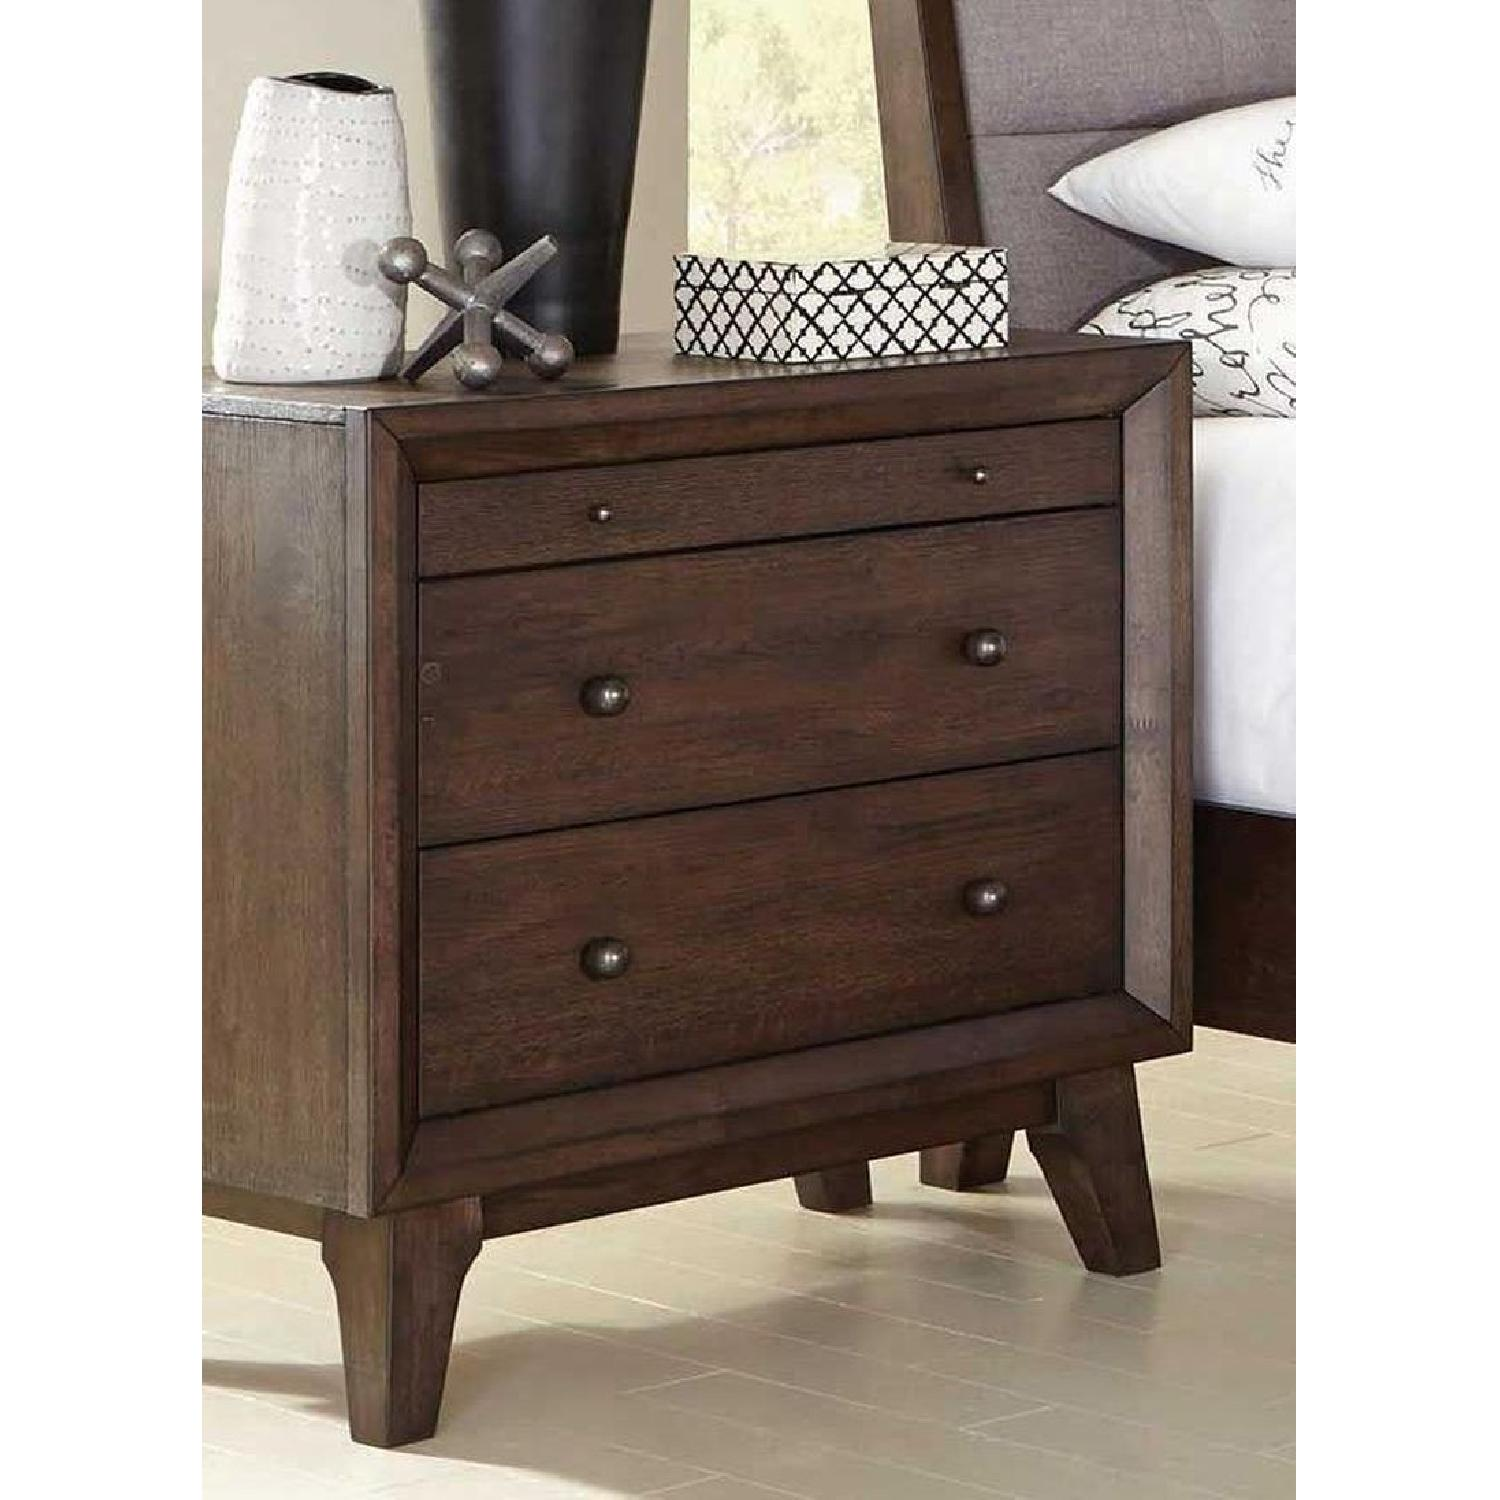 Modern Mid-Century Style Nightstand in Brown Finish - image-2